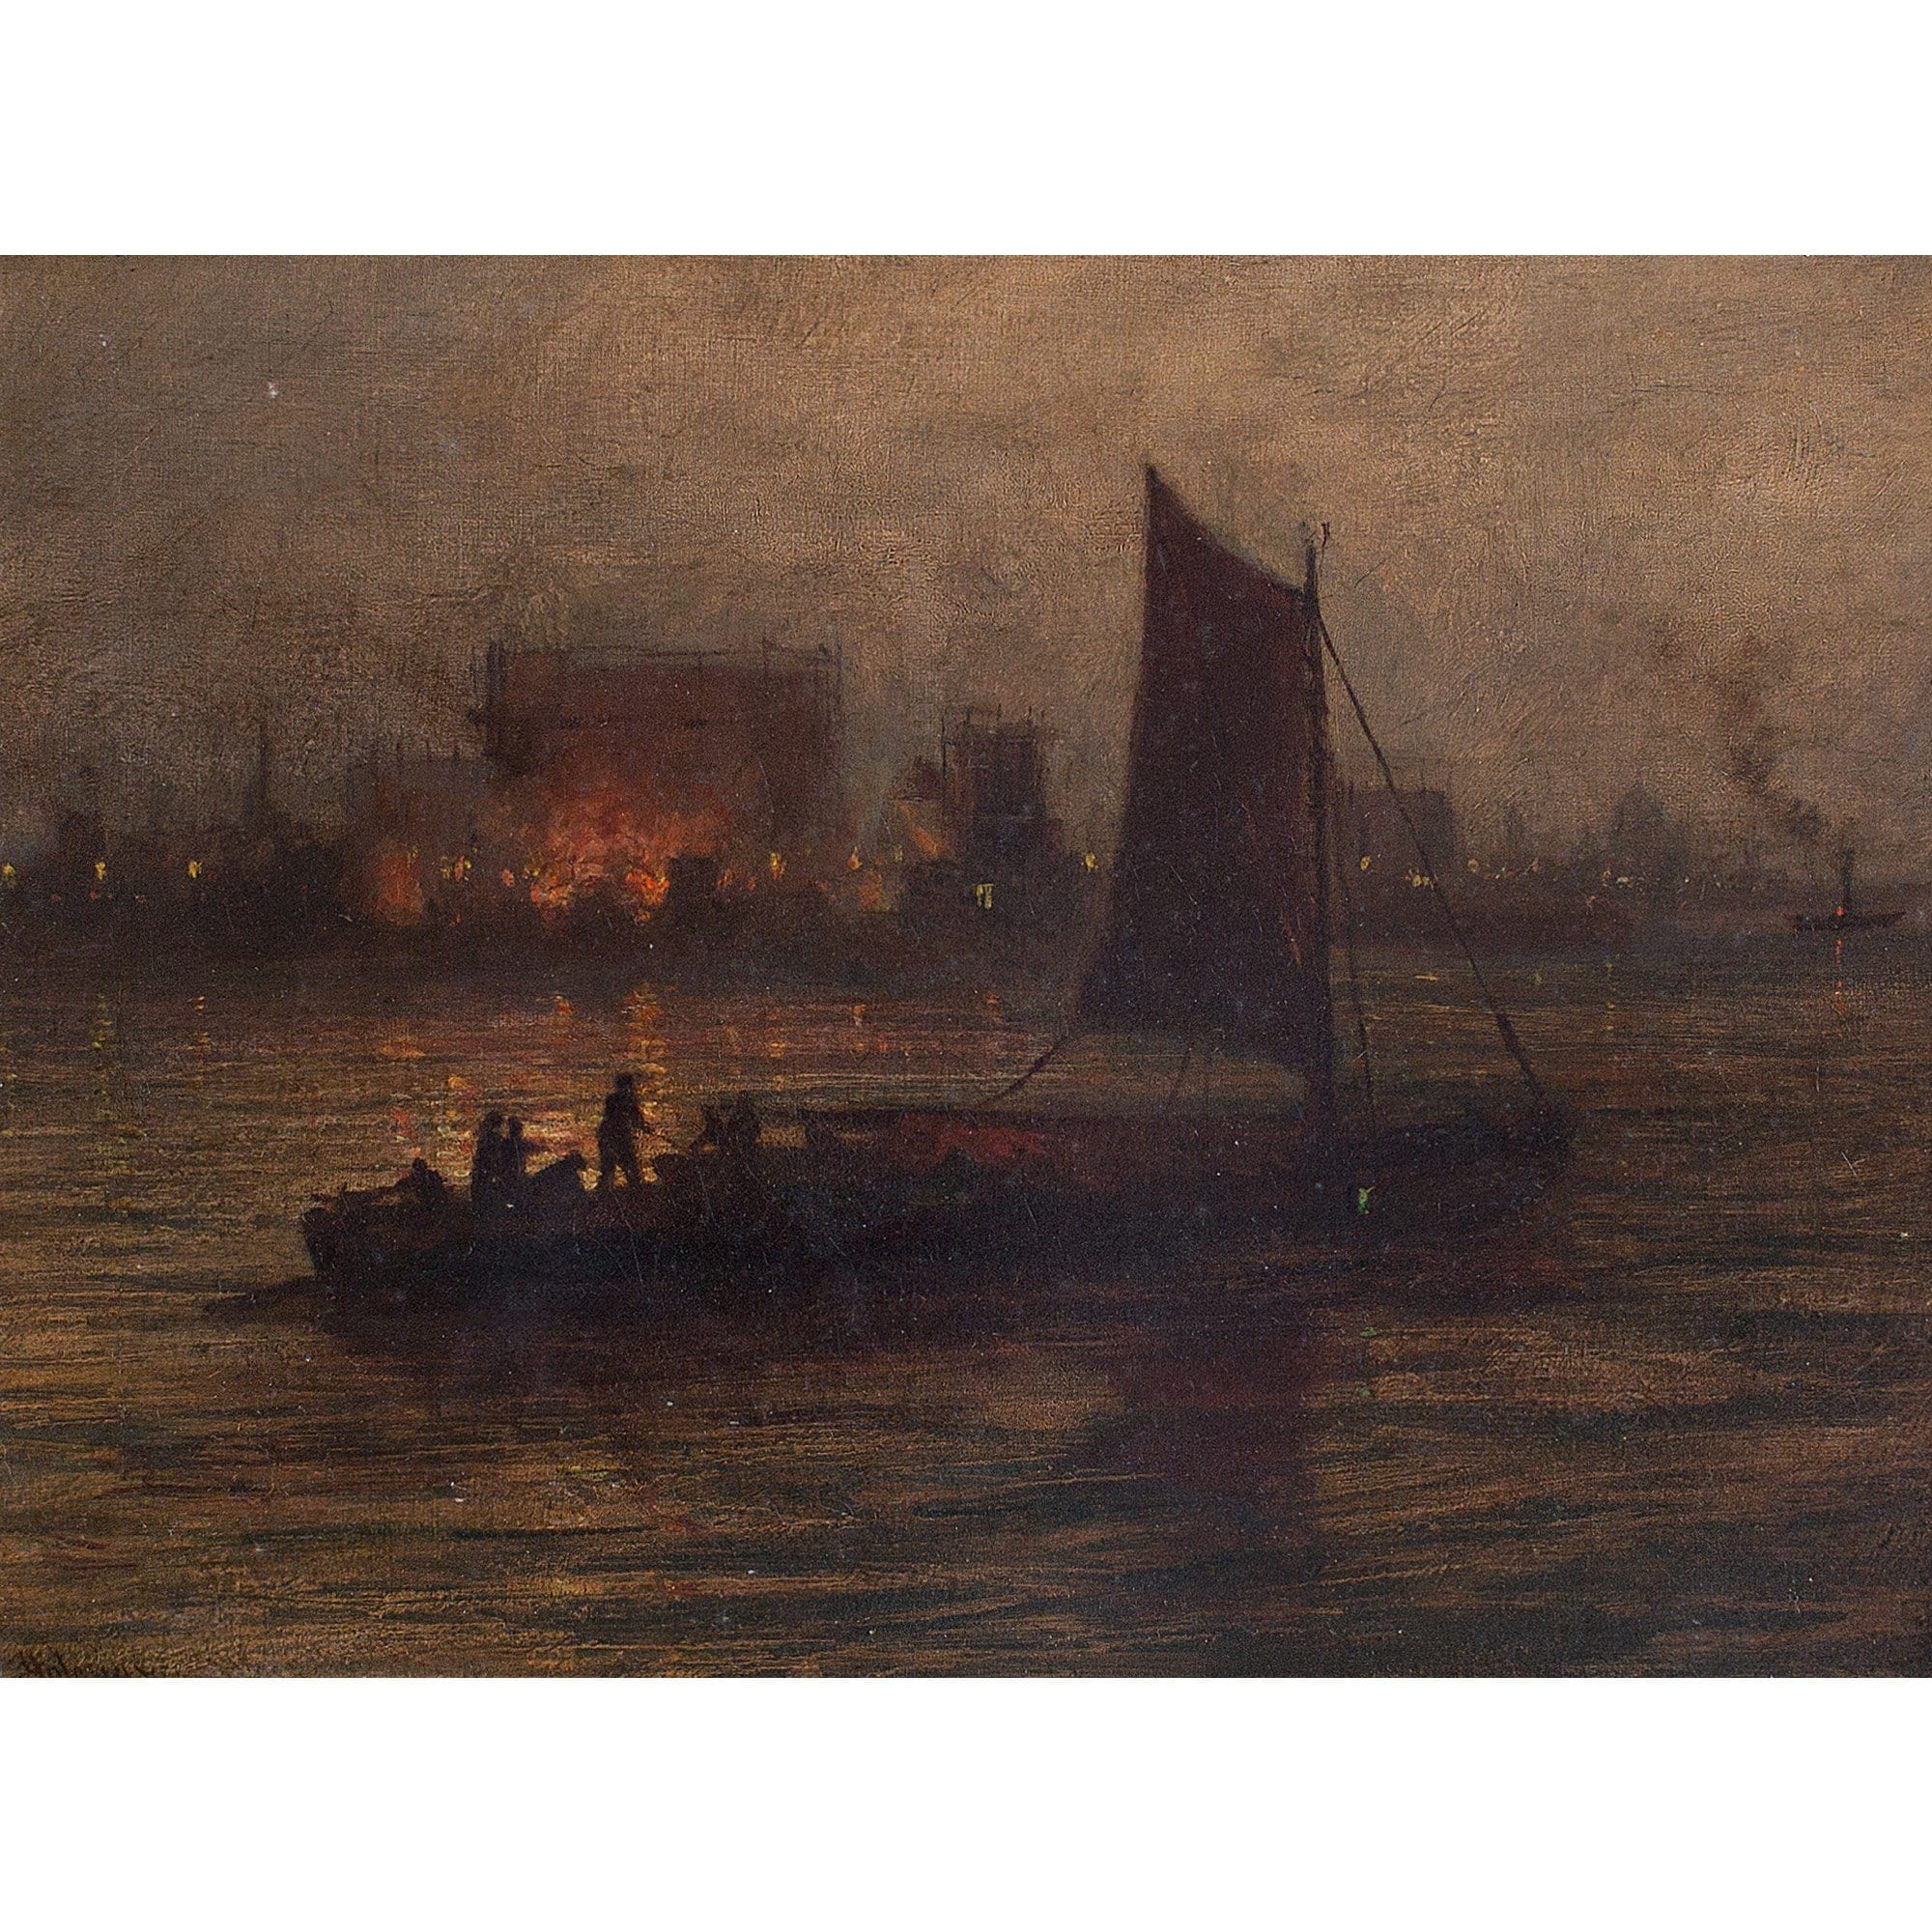 Night Fire, 19th-Century Harbour Scene - Original Framed Painting - Antique Art - Brave Fine Art